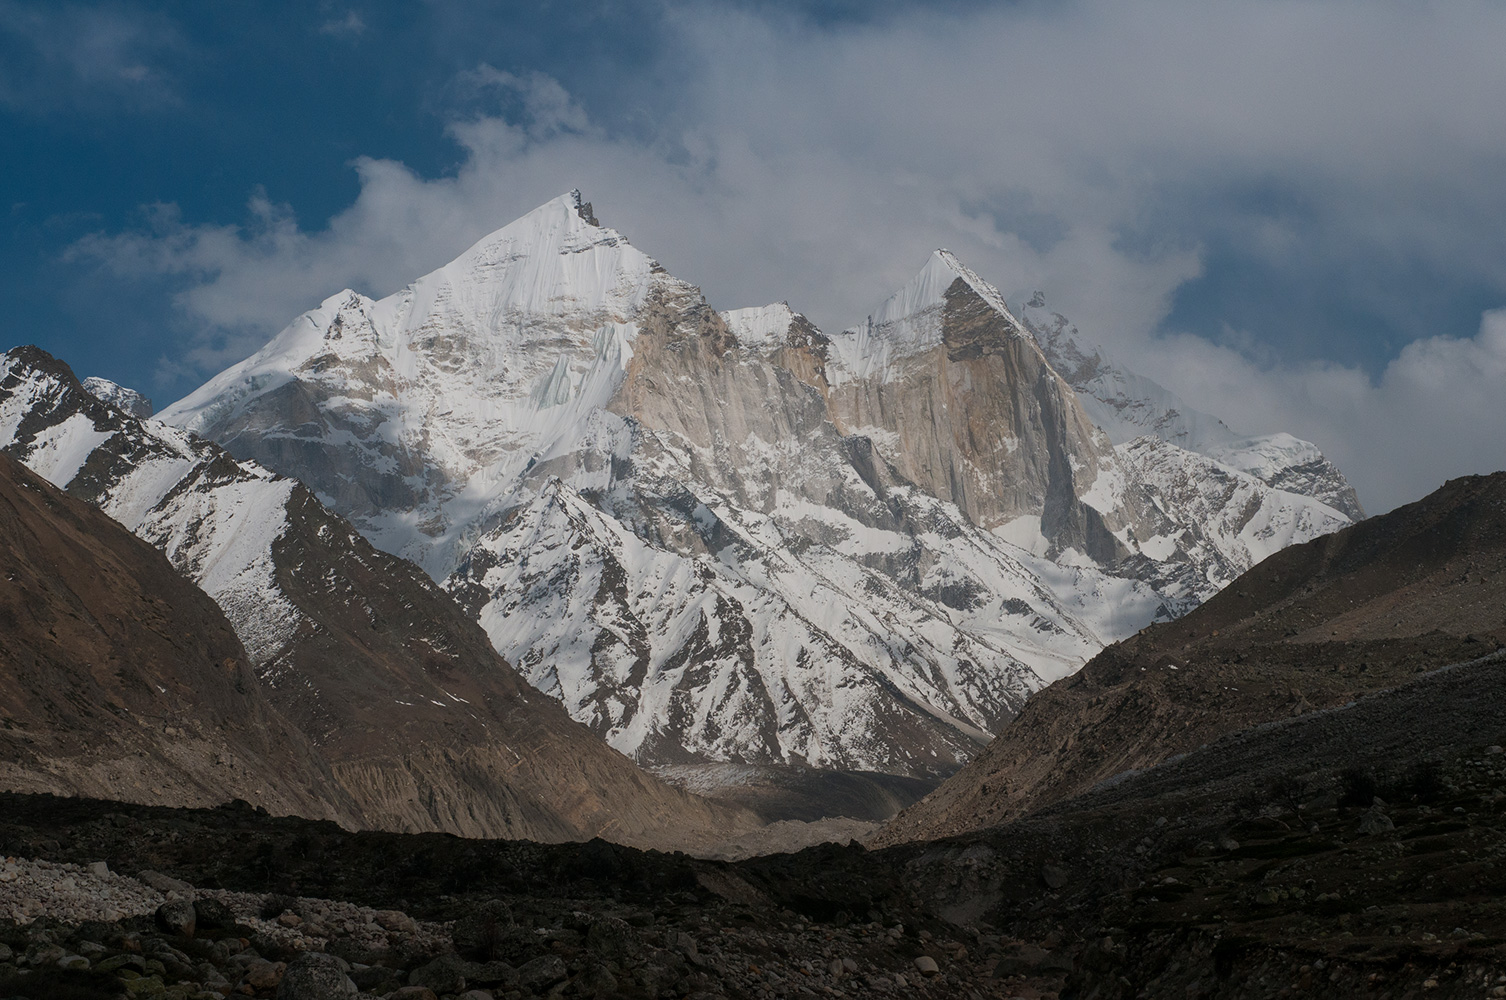 From Bhojbas in the Bhagirathi valley. Left to right; Bhagirathi II (6512m), Bhagirathi III (6454m) and Bhagirathi I (6856m). Nikon D300, 60mm